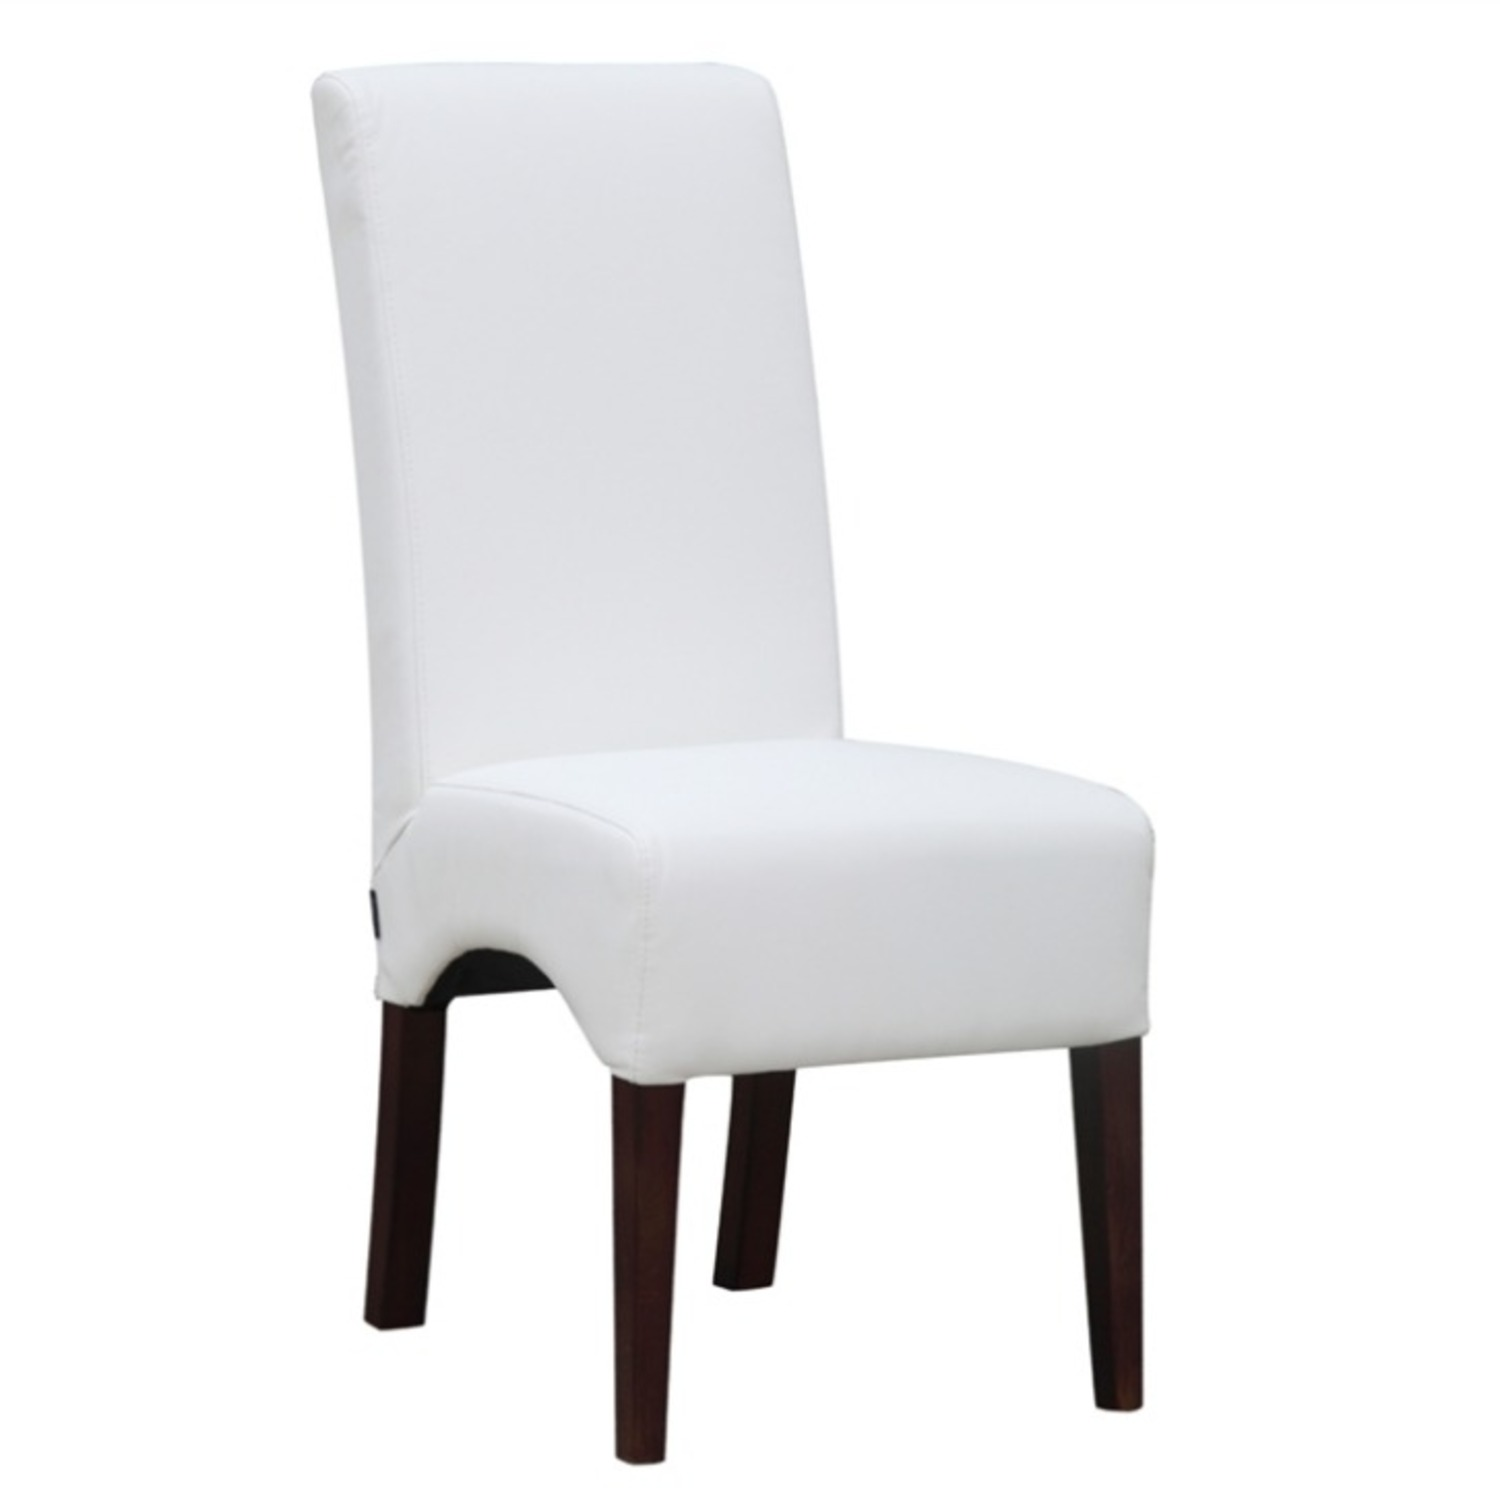 Modern Dining Chair In White PU Leather - image-0